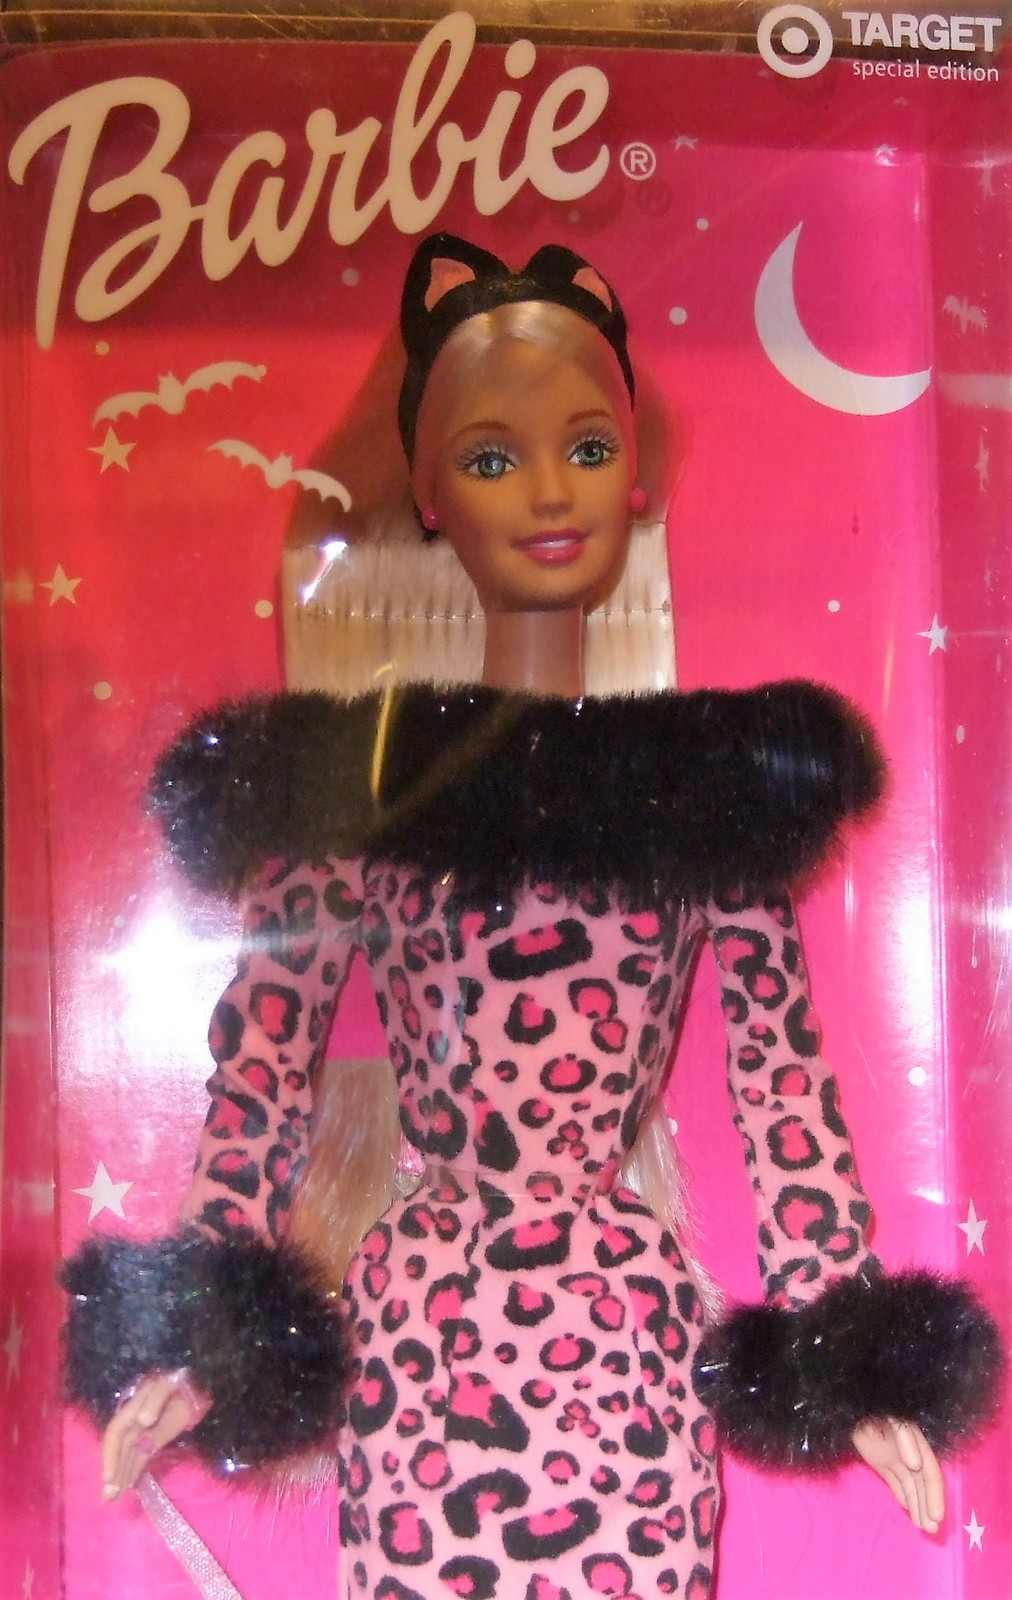 Barbie Doll - Perr-fectly Halloween (Target Special Edition) image 2